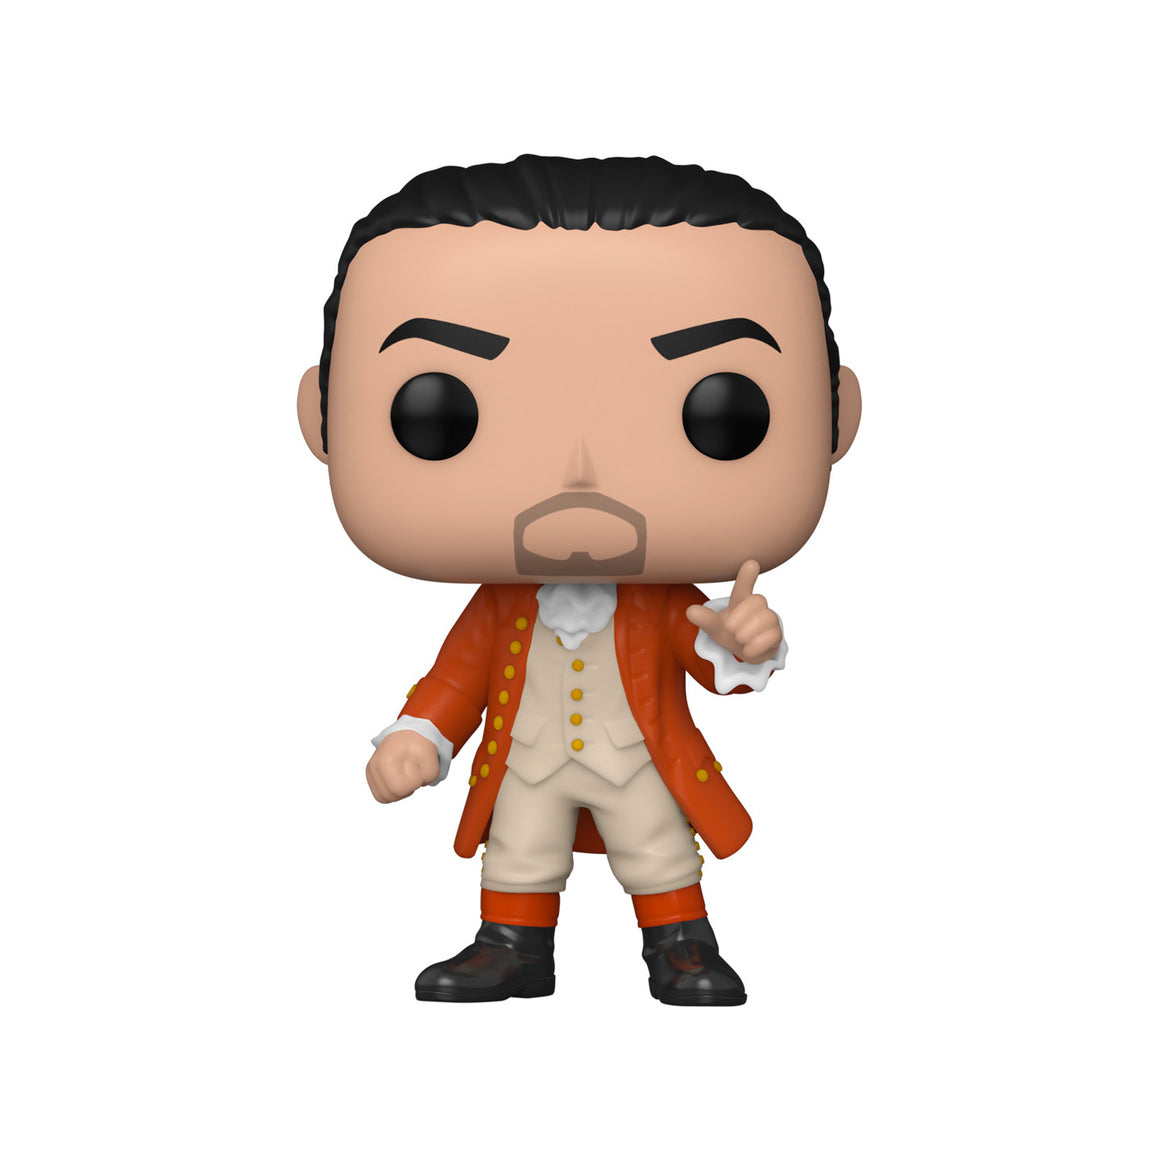 Alexander Hamilton Collectible Funko Pop - Preorder